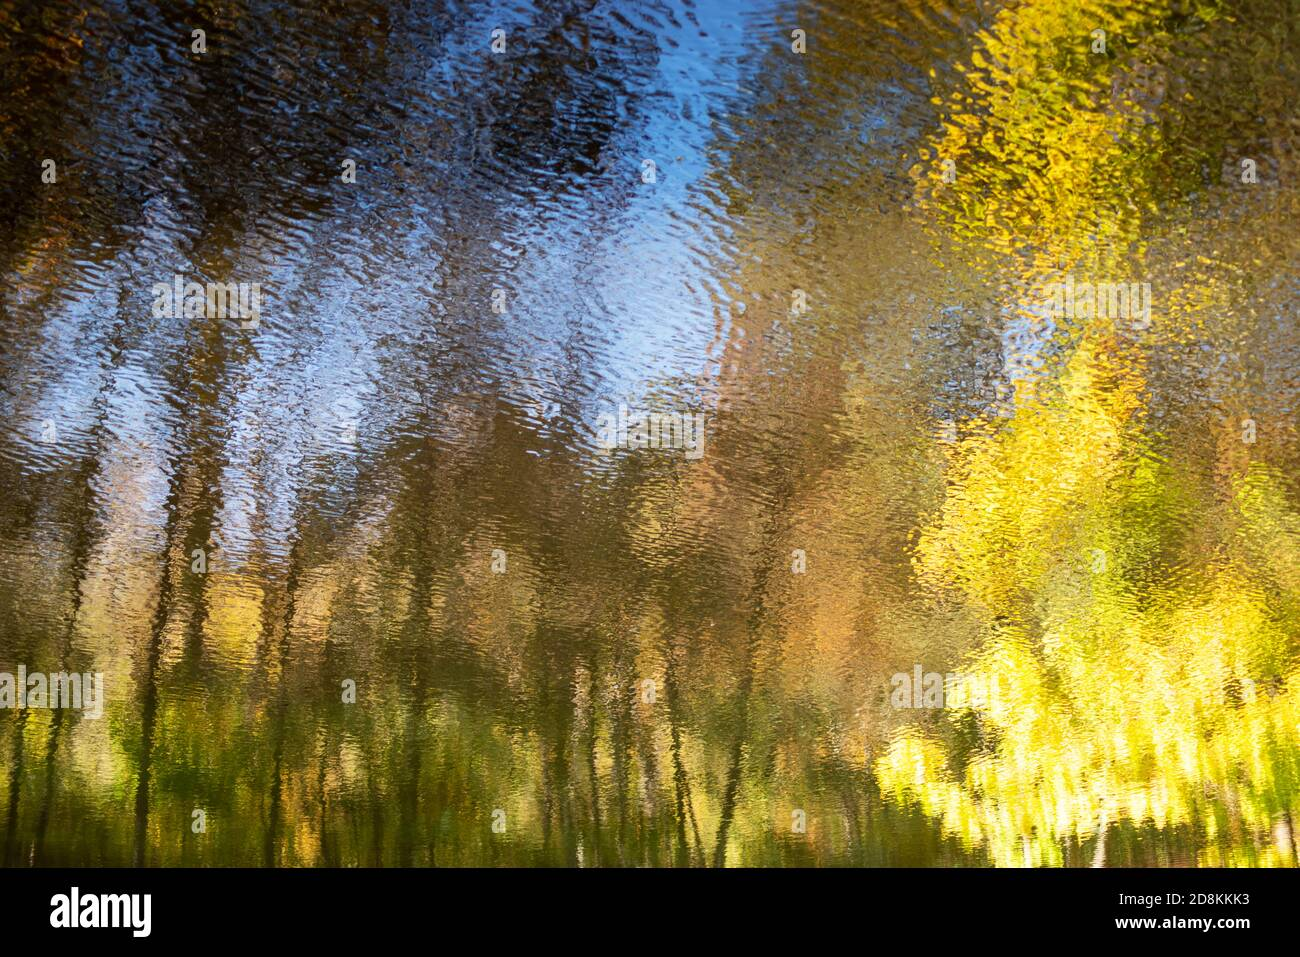 Abstract Autumn woodland reflected in flowing water Stock Photo